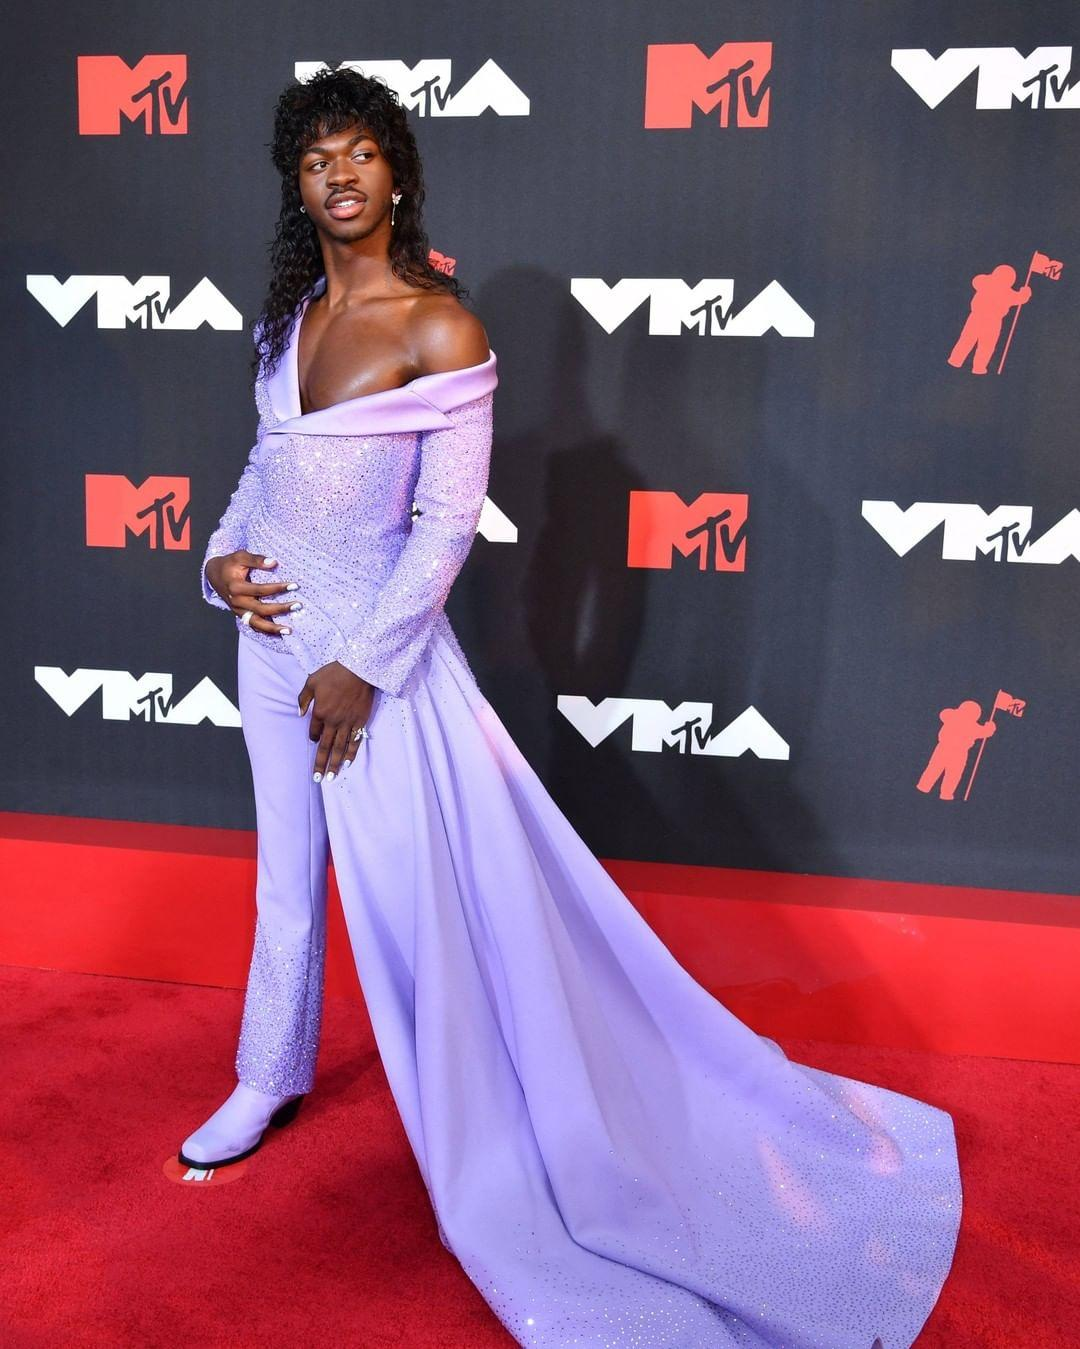 Lil NasX at the VMA red carpet